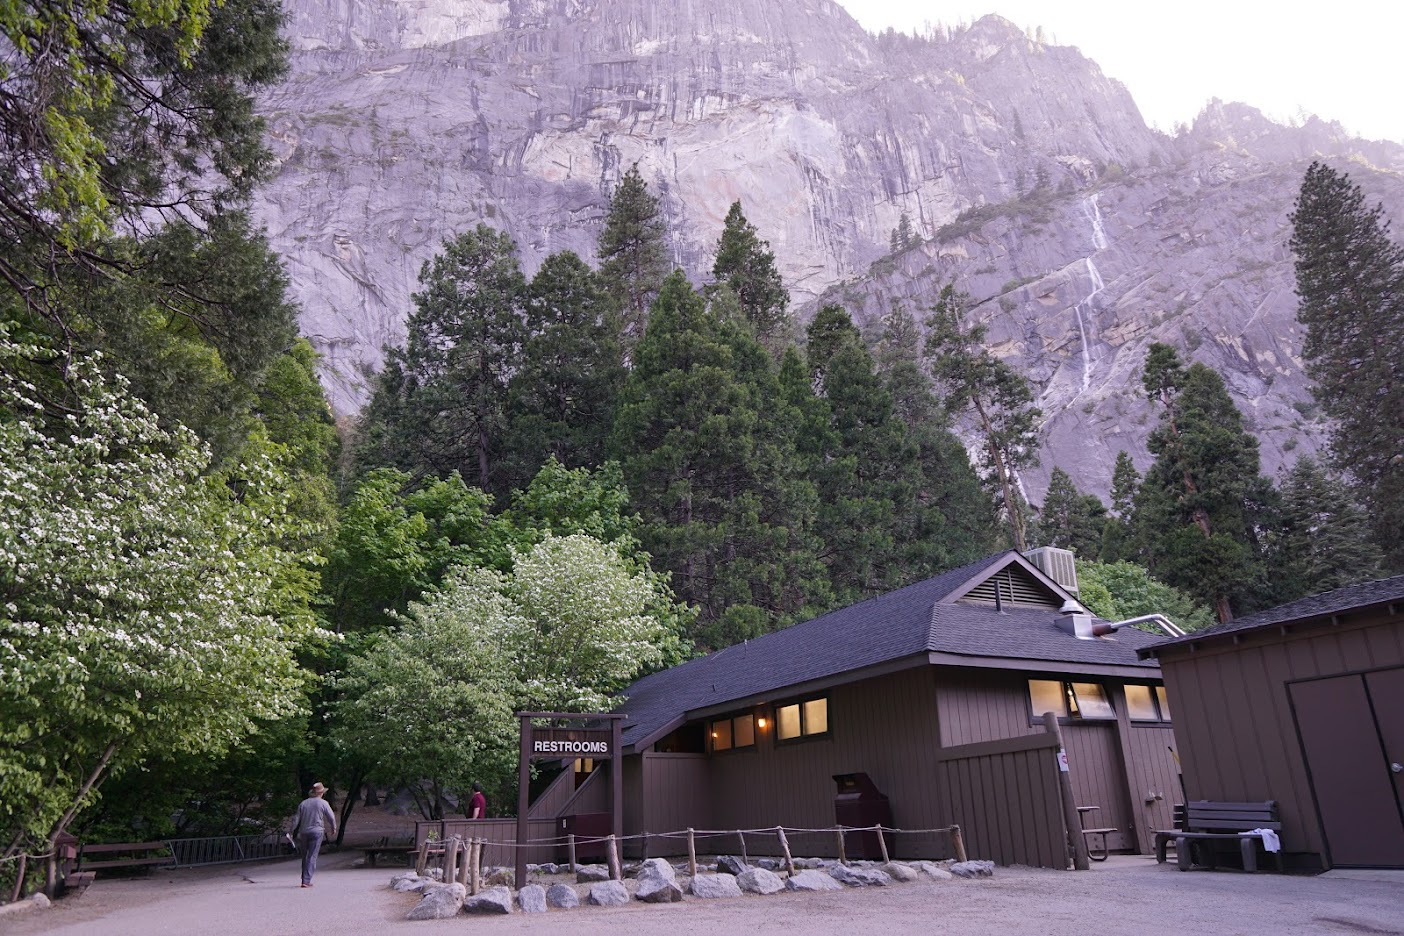 Yosemite Camp Ground